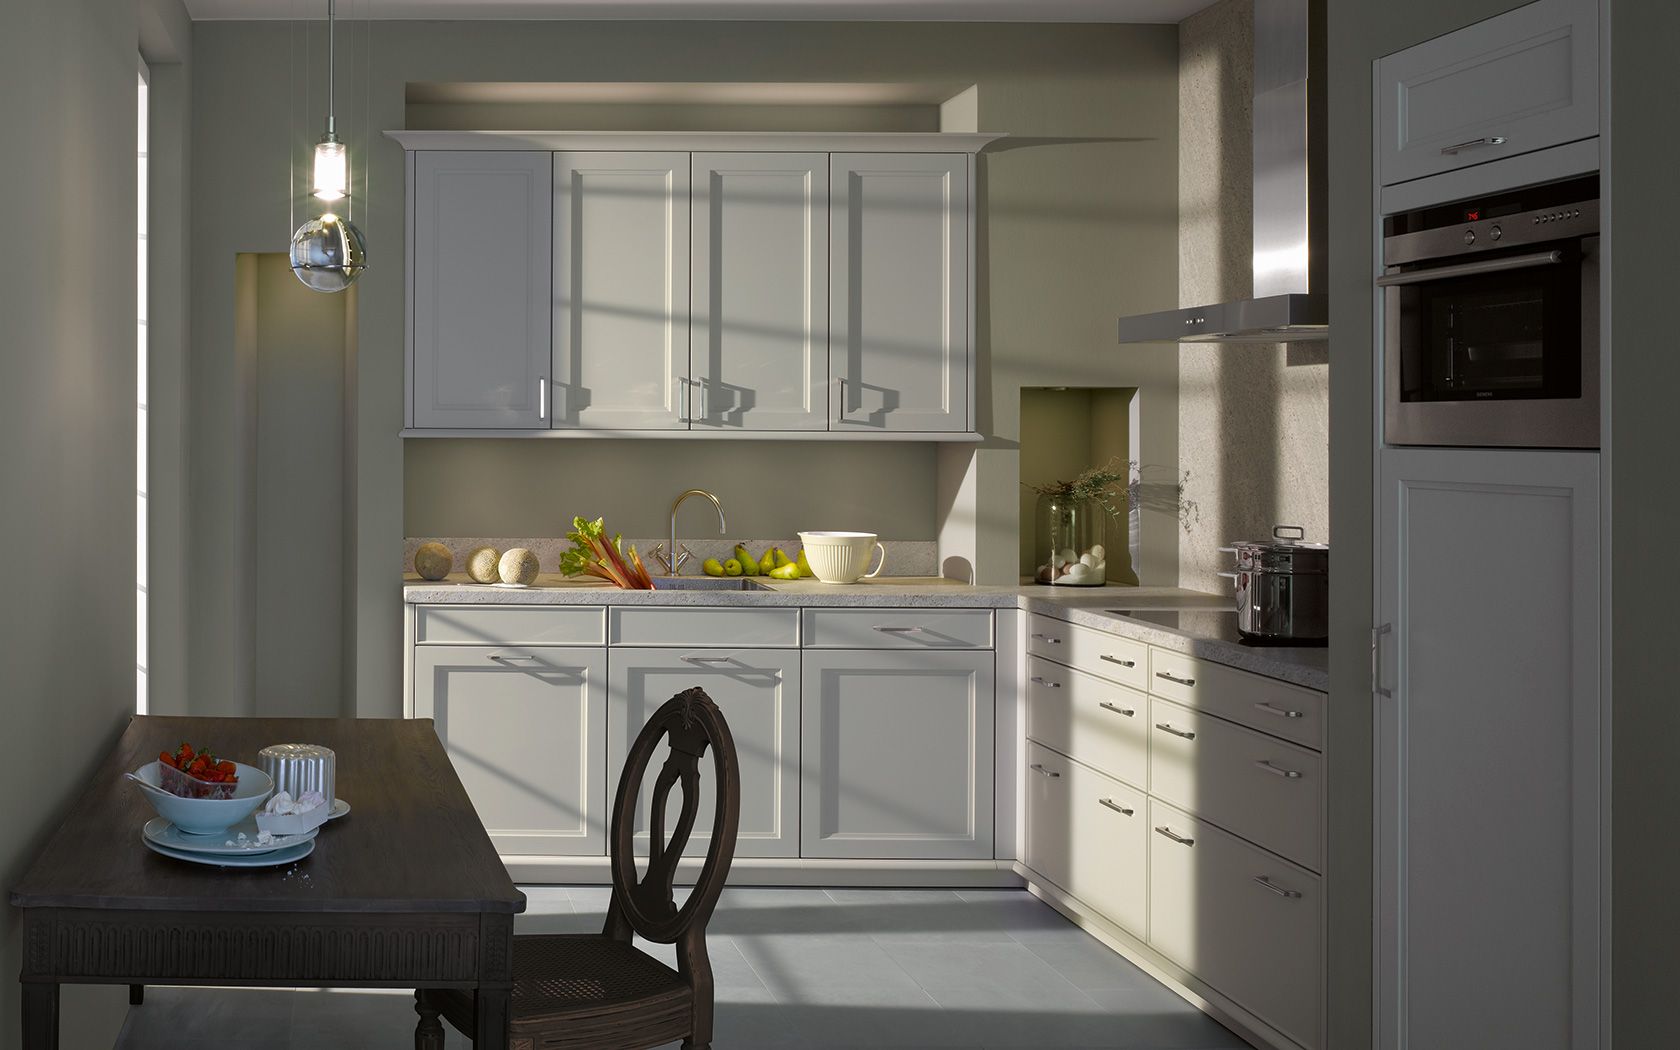 295_siematic se 2002 bs_salvia_green_04